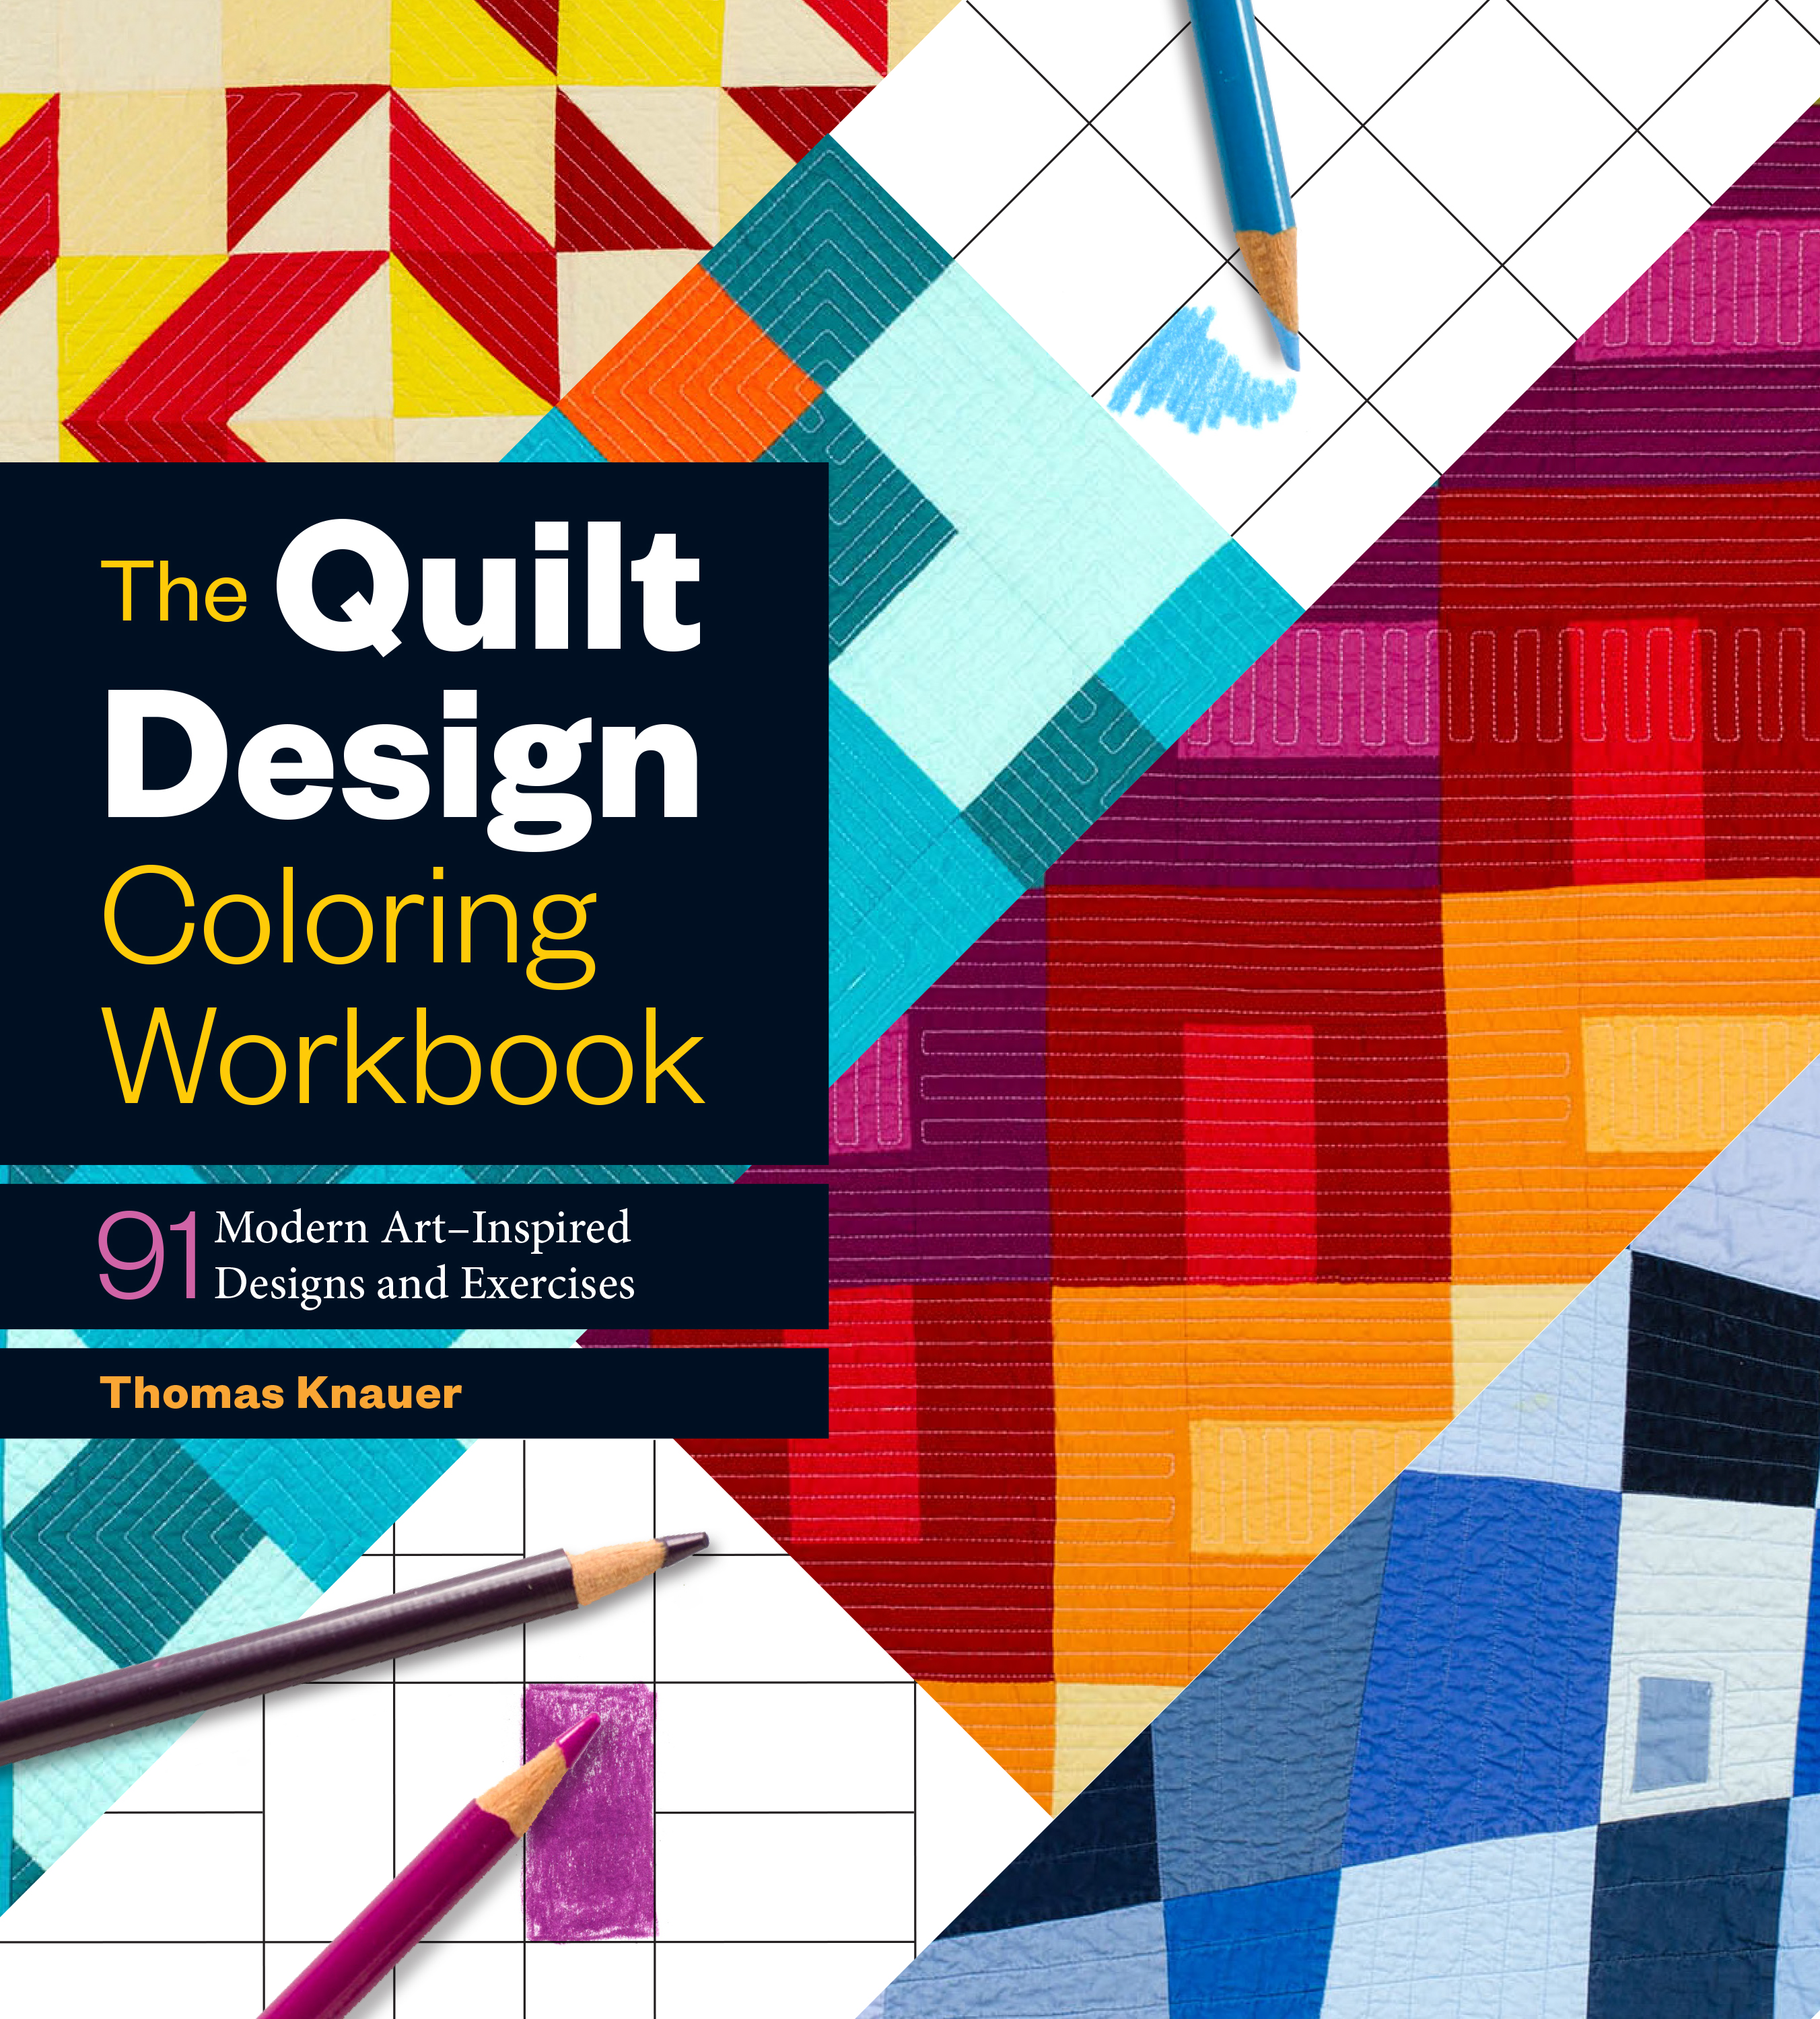 The Quilt Design Coloring Workbook 91 Modern Art–Inspired Designs and Exercises - Thomas Knauer